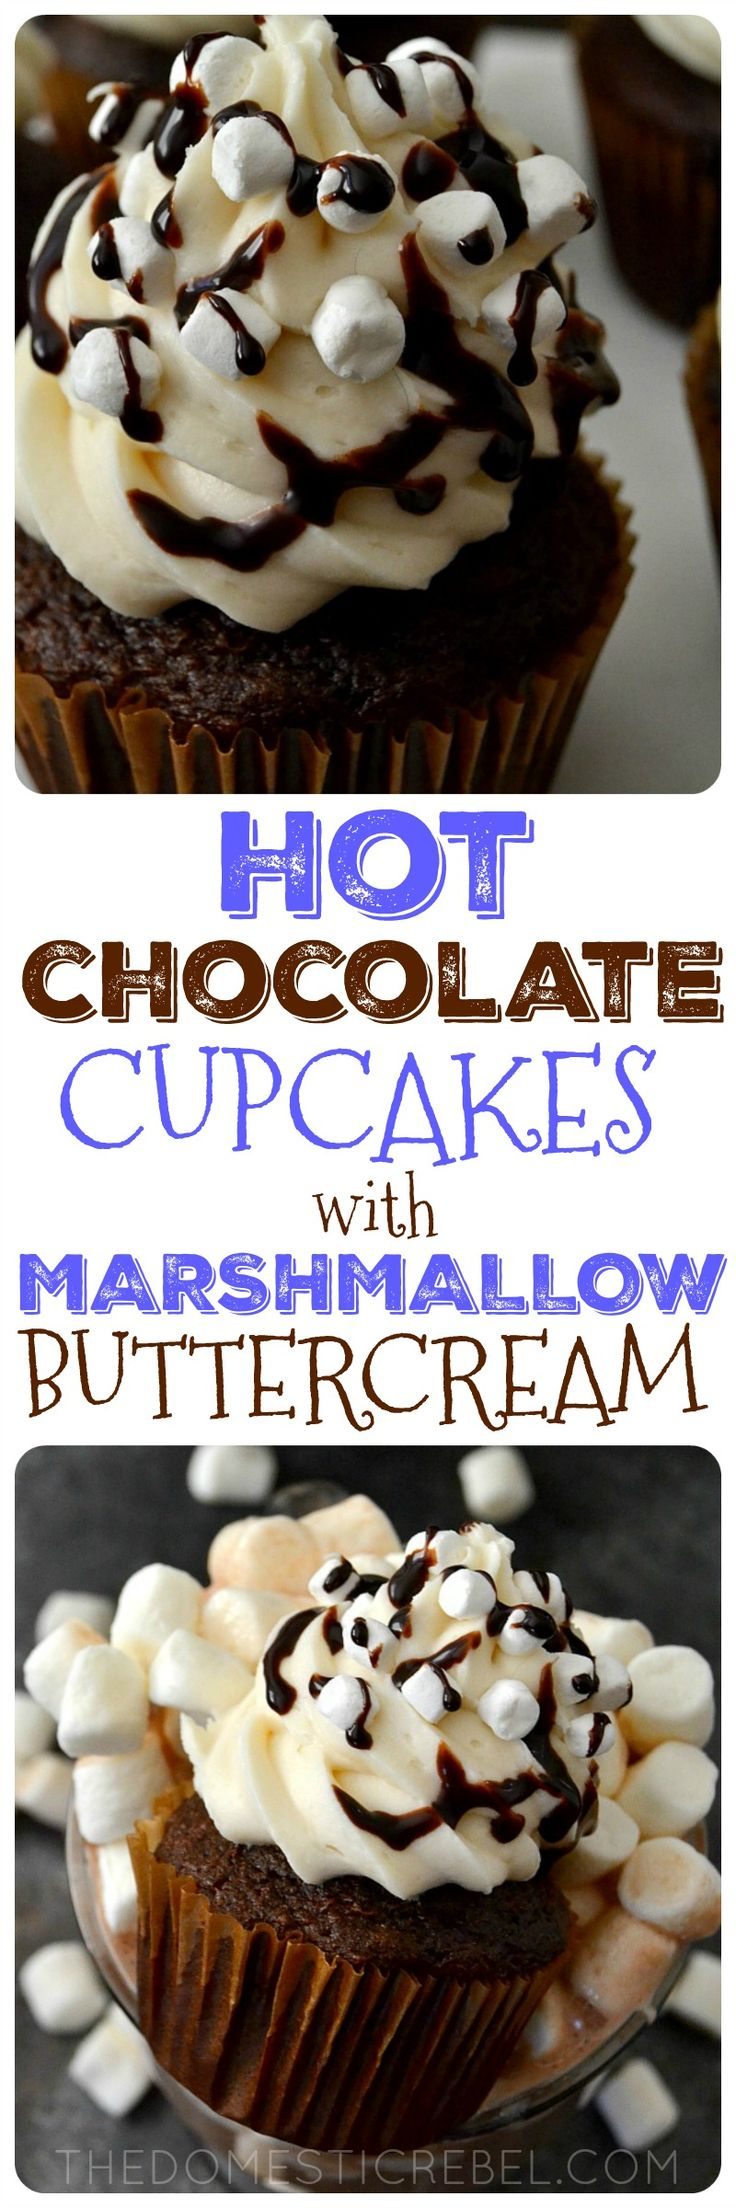 Hot Chocolate Cupcakes with Marshmallow Buttercream are a wonderful treat for anytime of year! Moist, fluffy, hot cocoa cupcakes topped with a light & smooth sweet marshmallow frosting. Easy, impressive and totally fun!